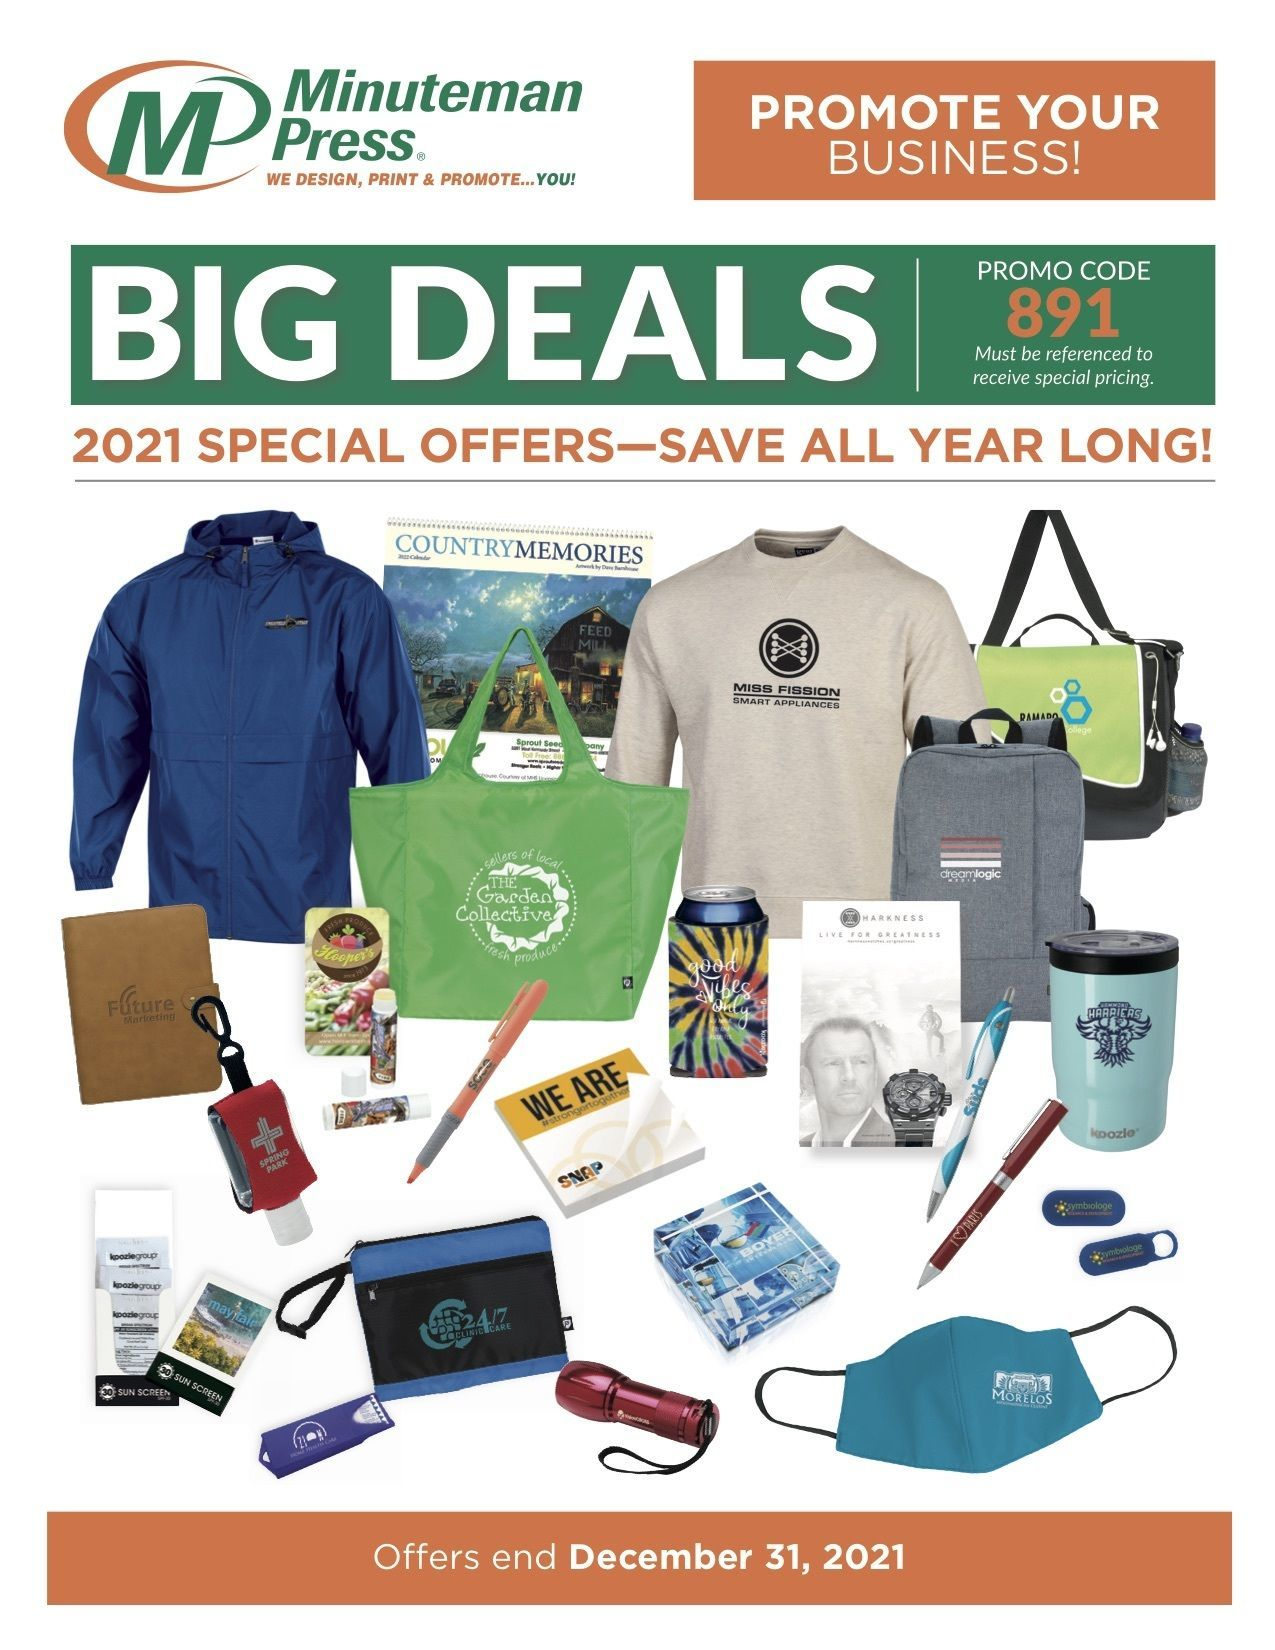 Promote your business and save all year on Minuteman Press Champaign promotional items. Call us at 217-355-0500 for information on our database of thousands of products designed to help you promote your business, reward employees